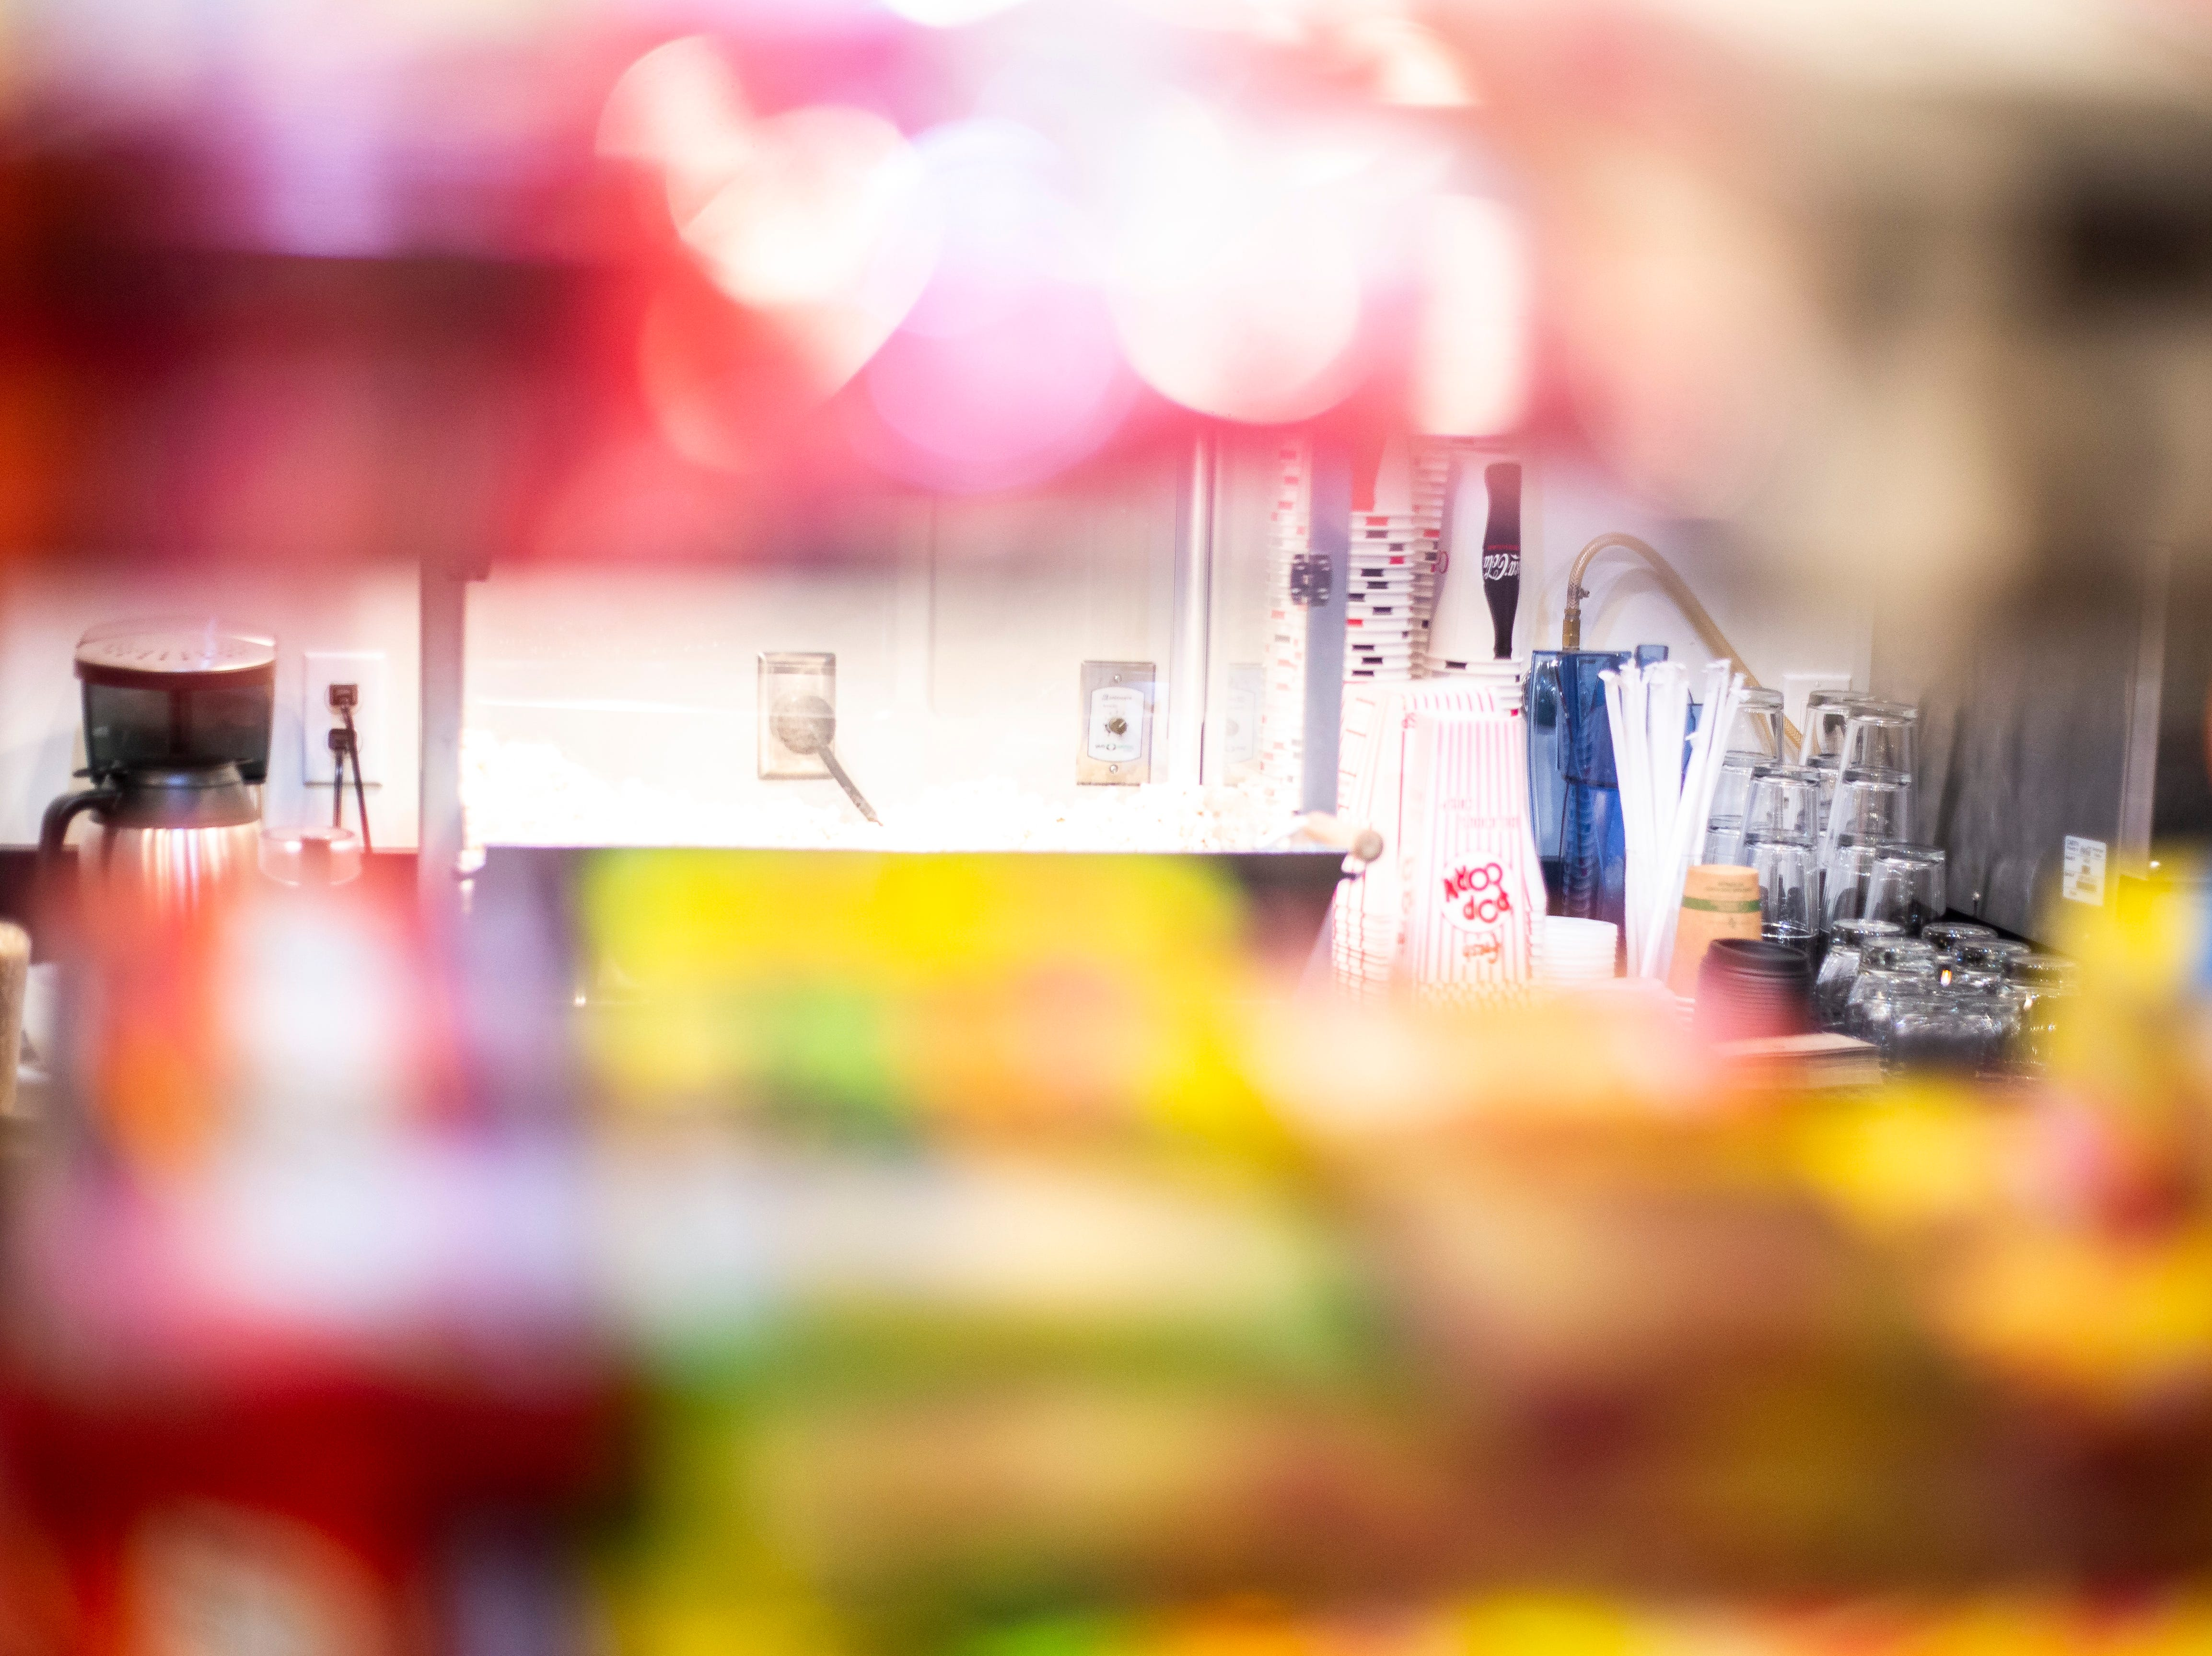 """A popcorn machine is seen through a rack of candy boxes during a """"Late Shift at the Grindhouse"""" movie screening, Wednesday, April 17, 2019, at FilmScene in Iowa City, Iowa."""